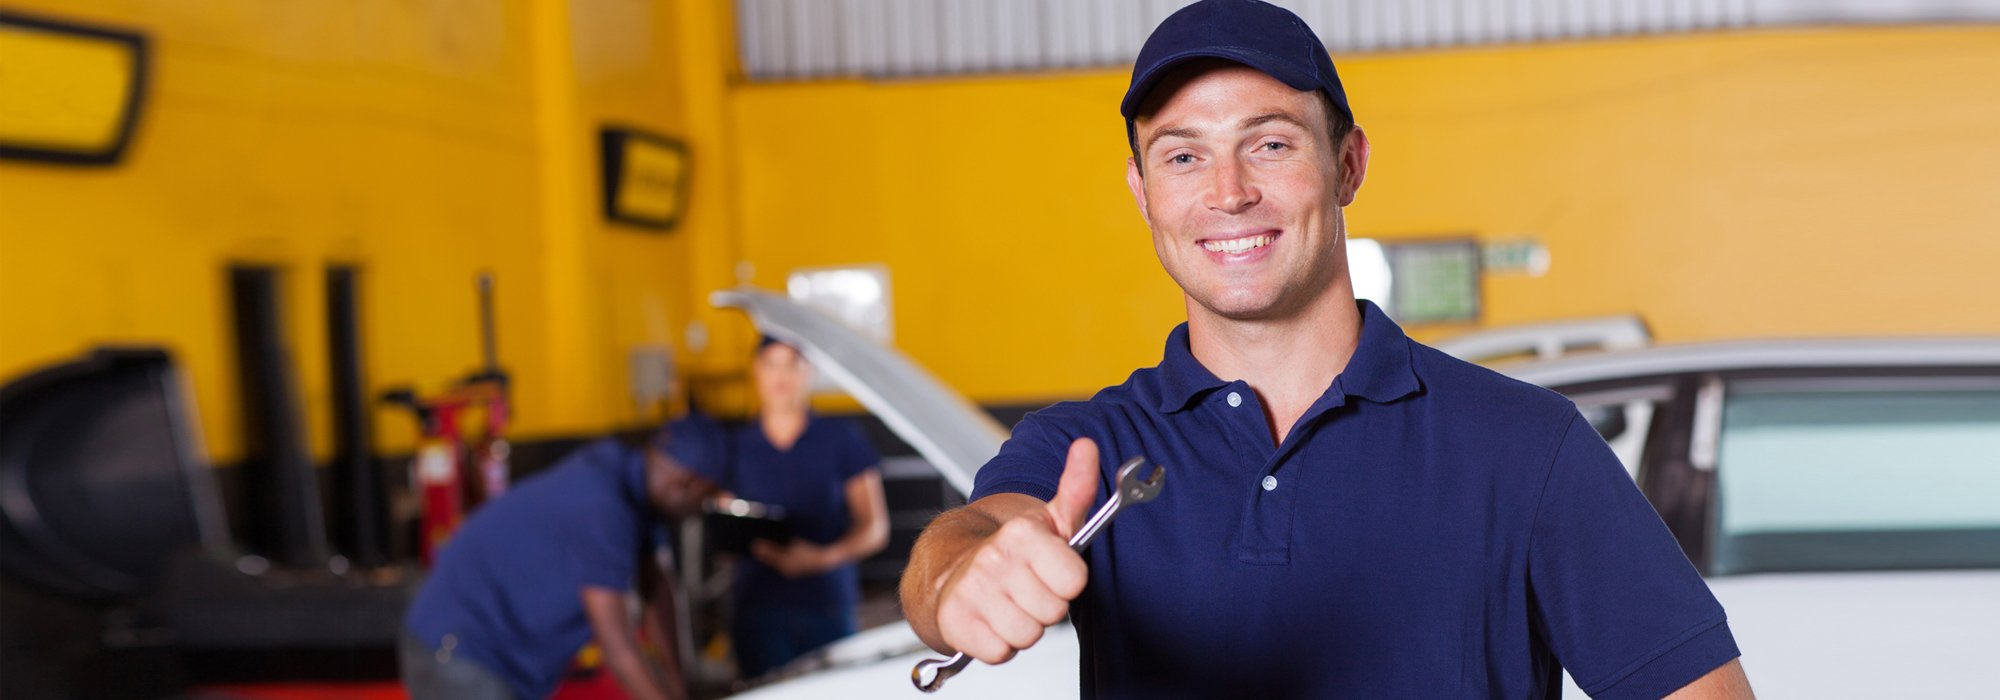 Auto mechanic at the workshop